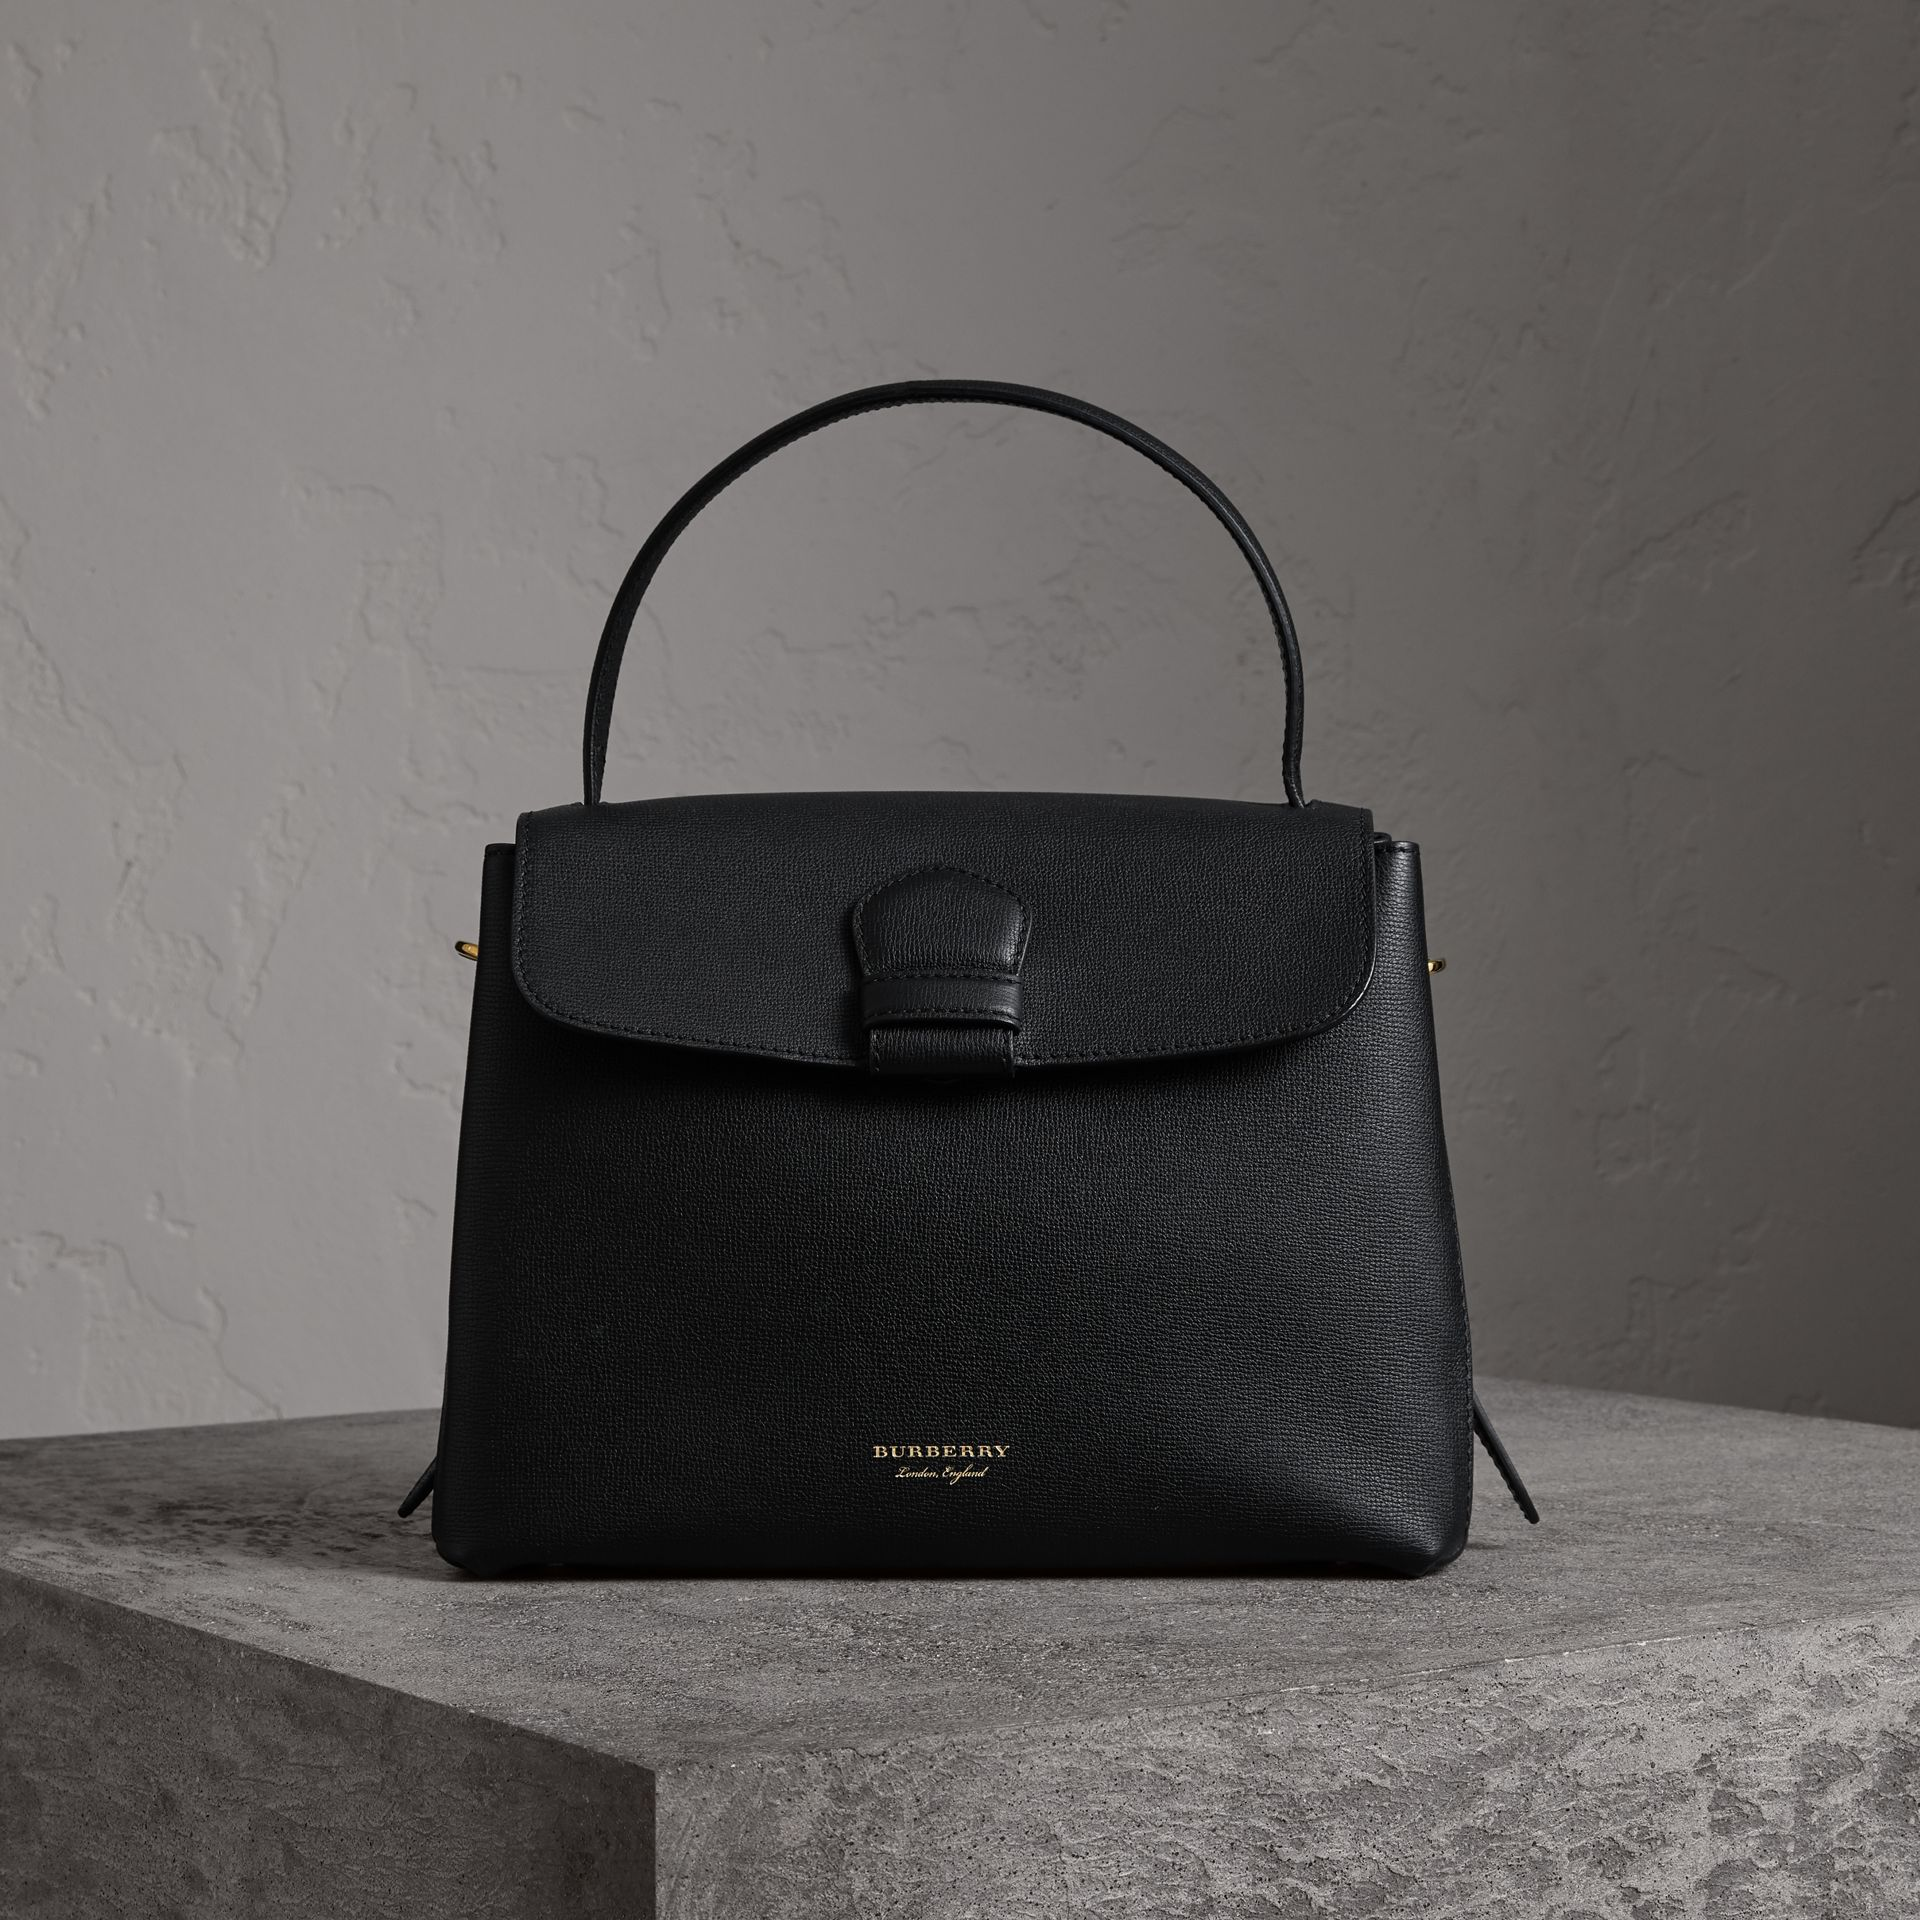 Medium Grainy Leather and House Check Tote Bag in Black - Women | Burberry - gallery image 6